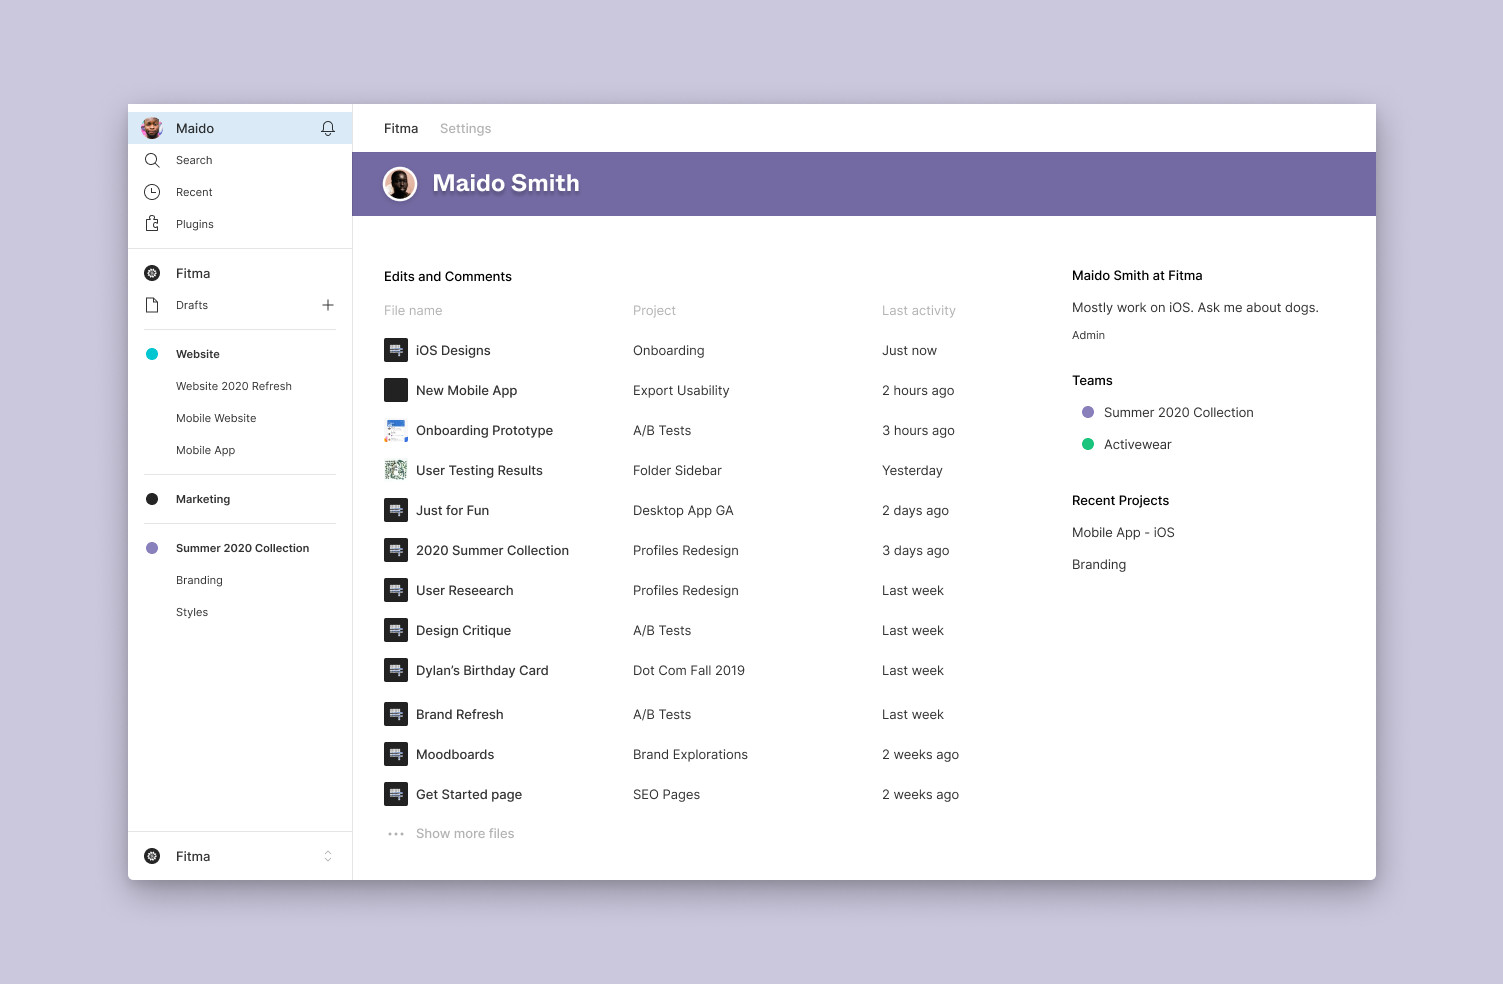 Use the internal profile to view a detailed history of a person's activity across teams, files, and projects